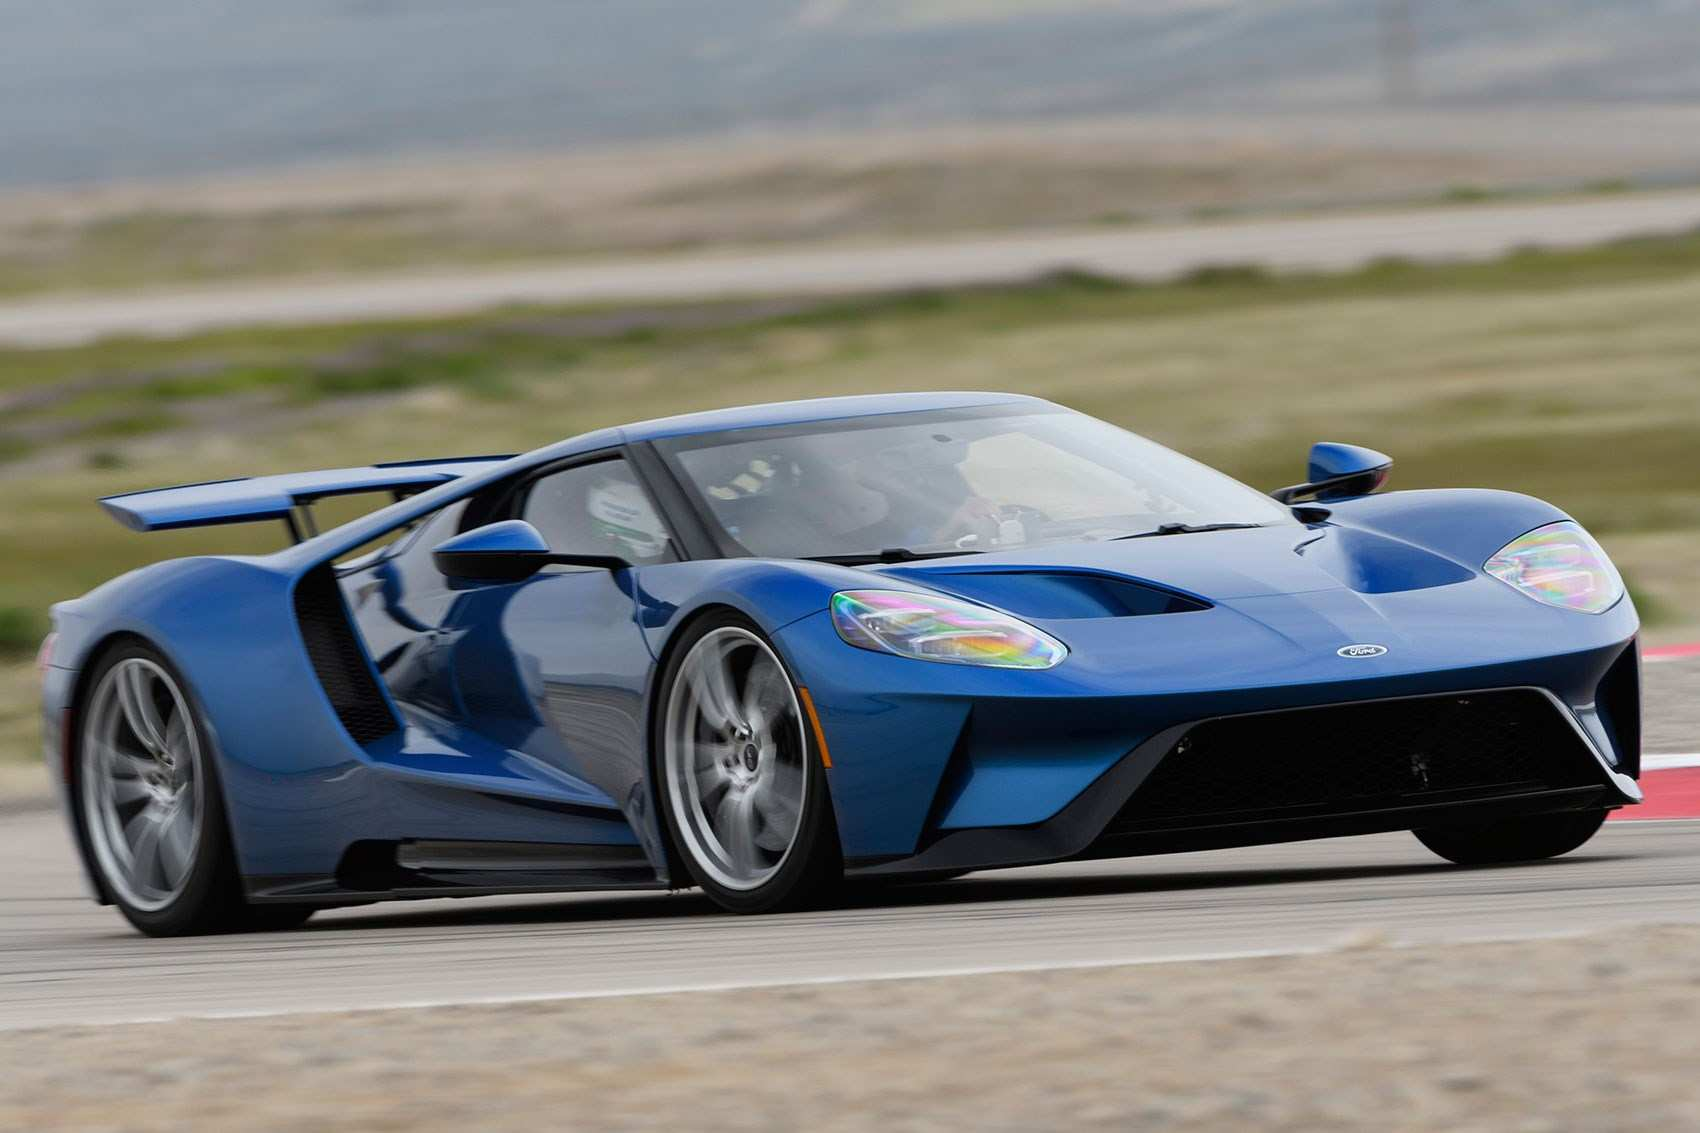 86 Best Review 2020 Ford Gt Supercar Configurations for 2020 Ford Gt Supercar